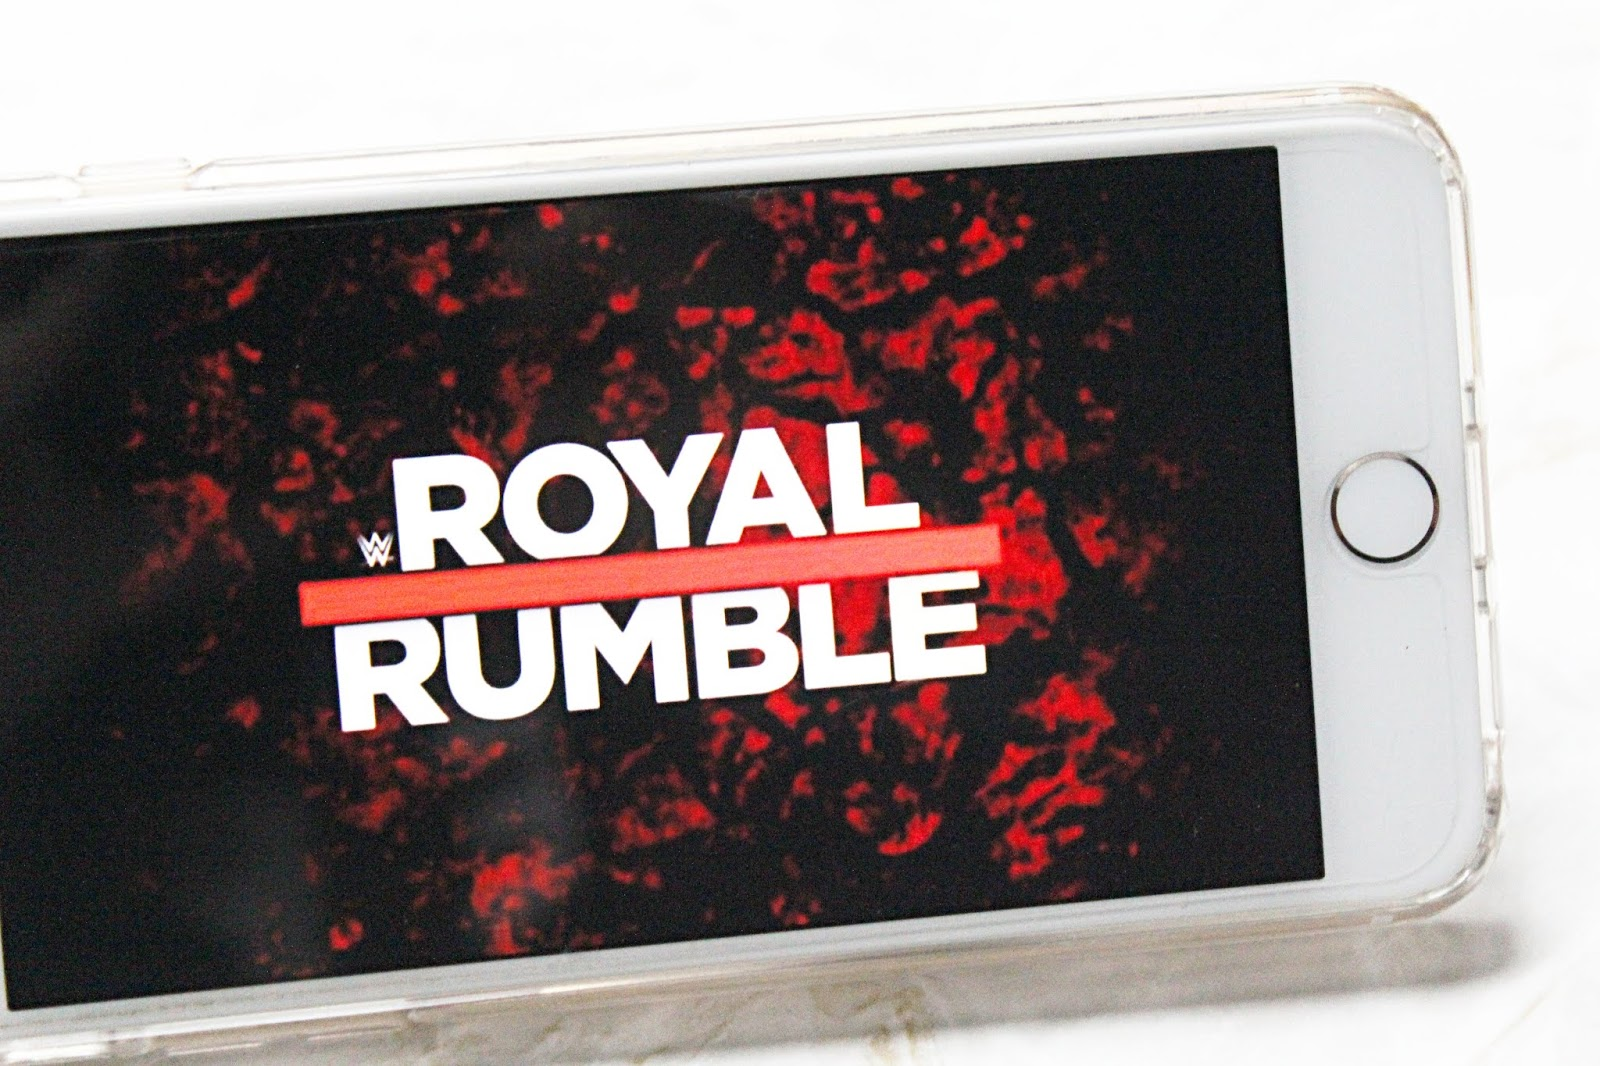 Royal Rumble Predictions 2019